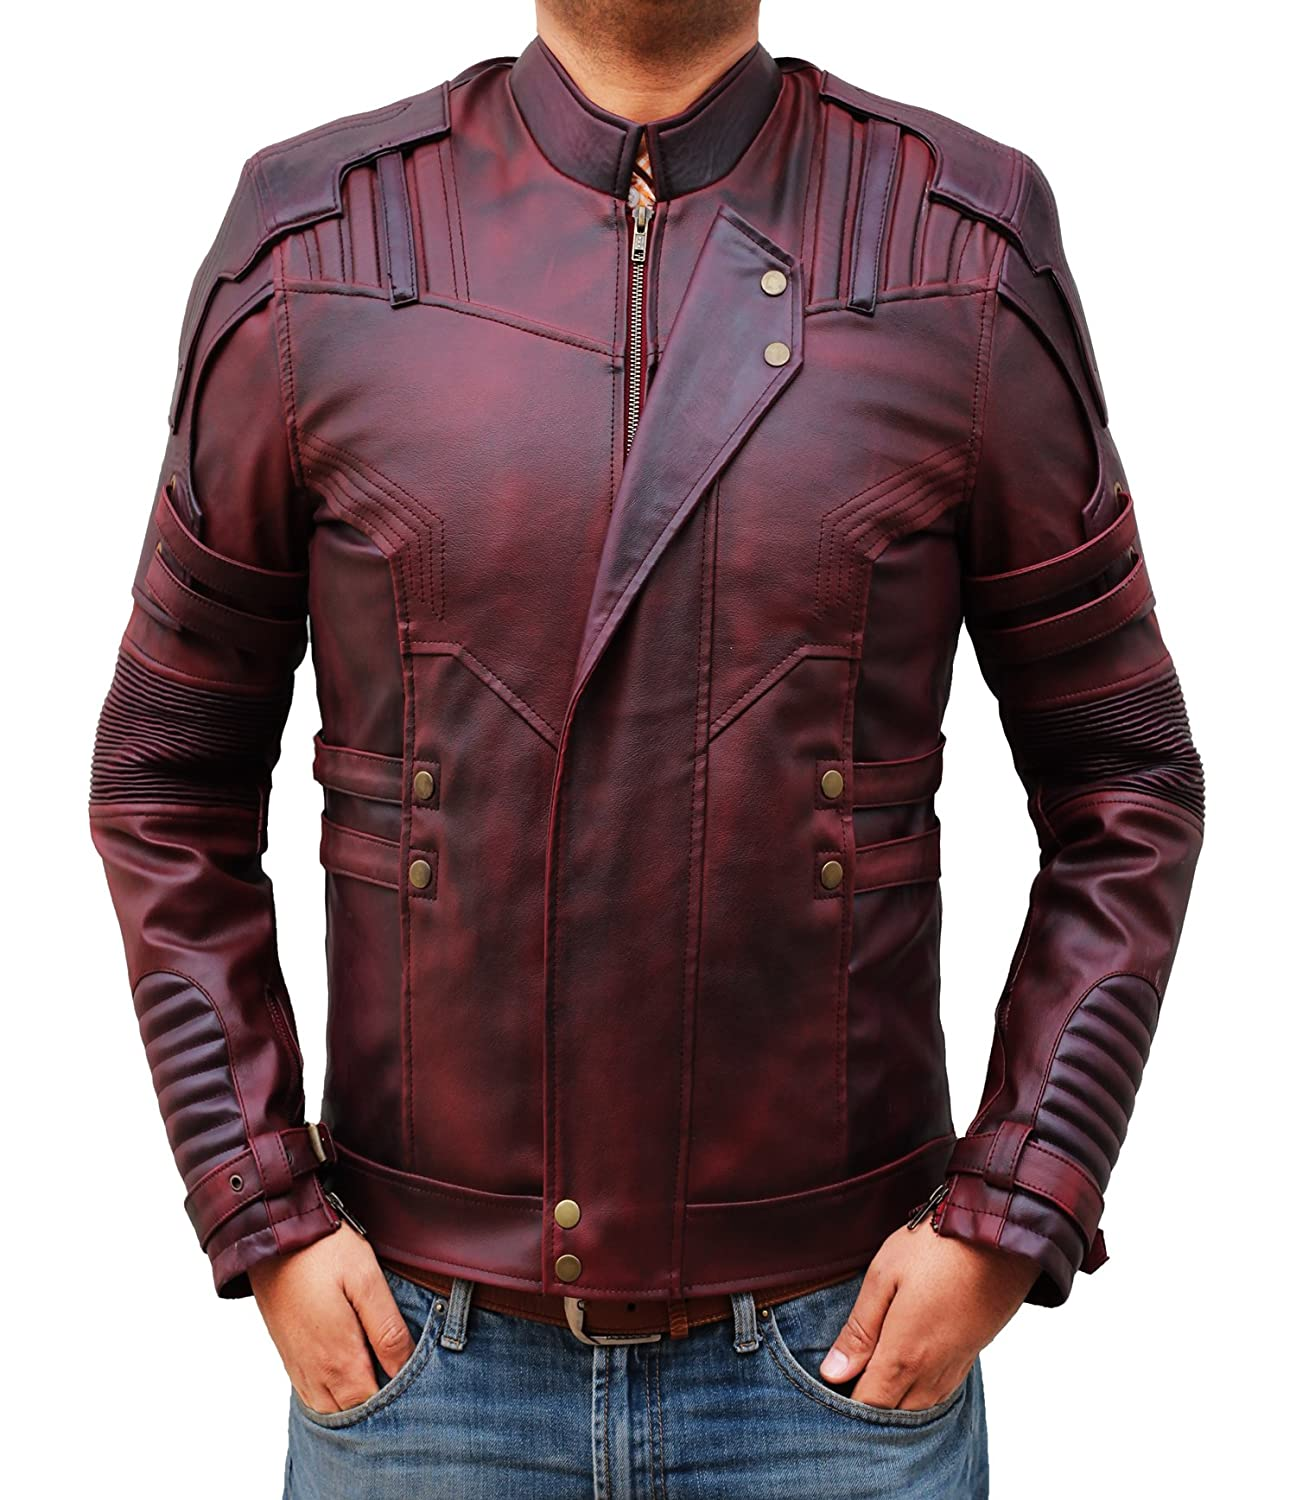 Star Lord Leather Jacket Men's - Chris Pratt Costume Maroon Motorcycle Jacket